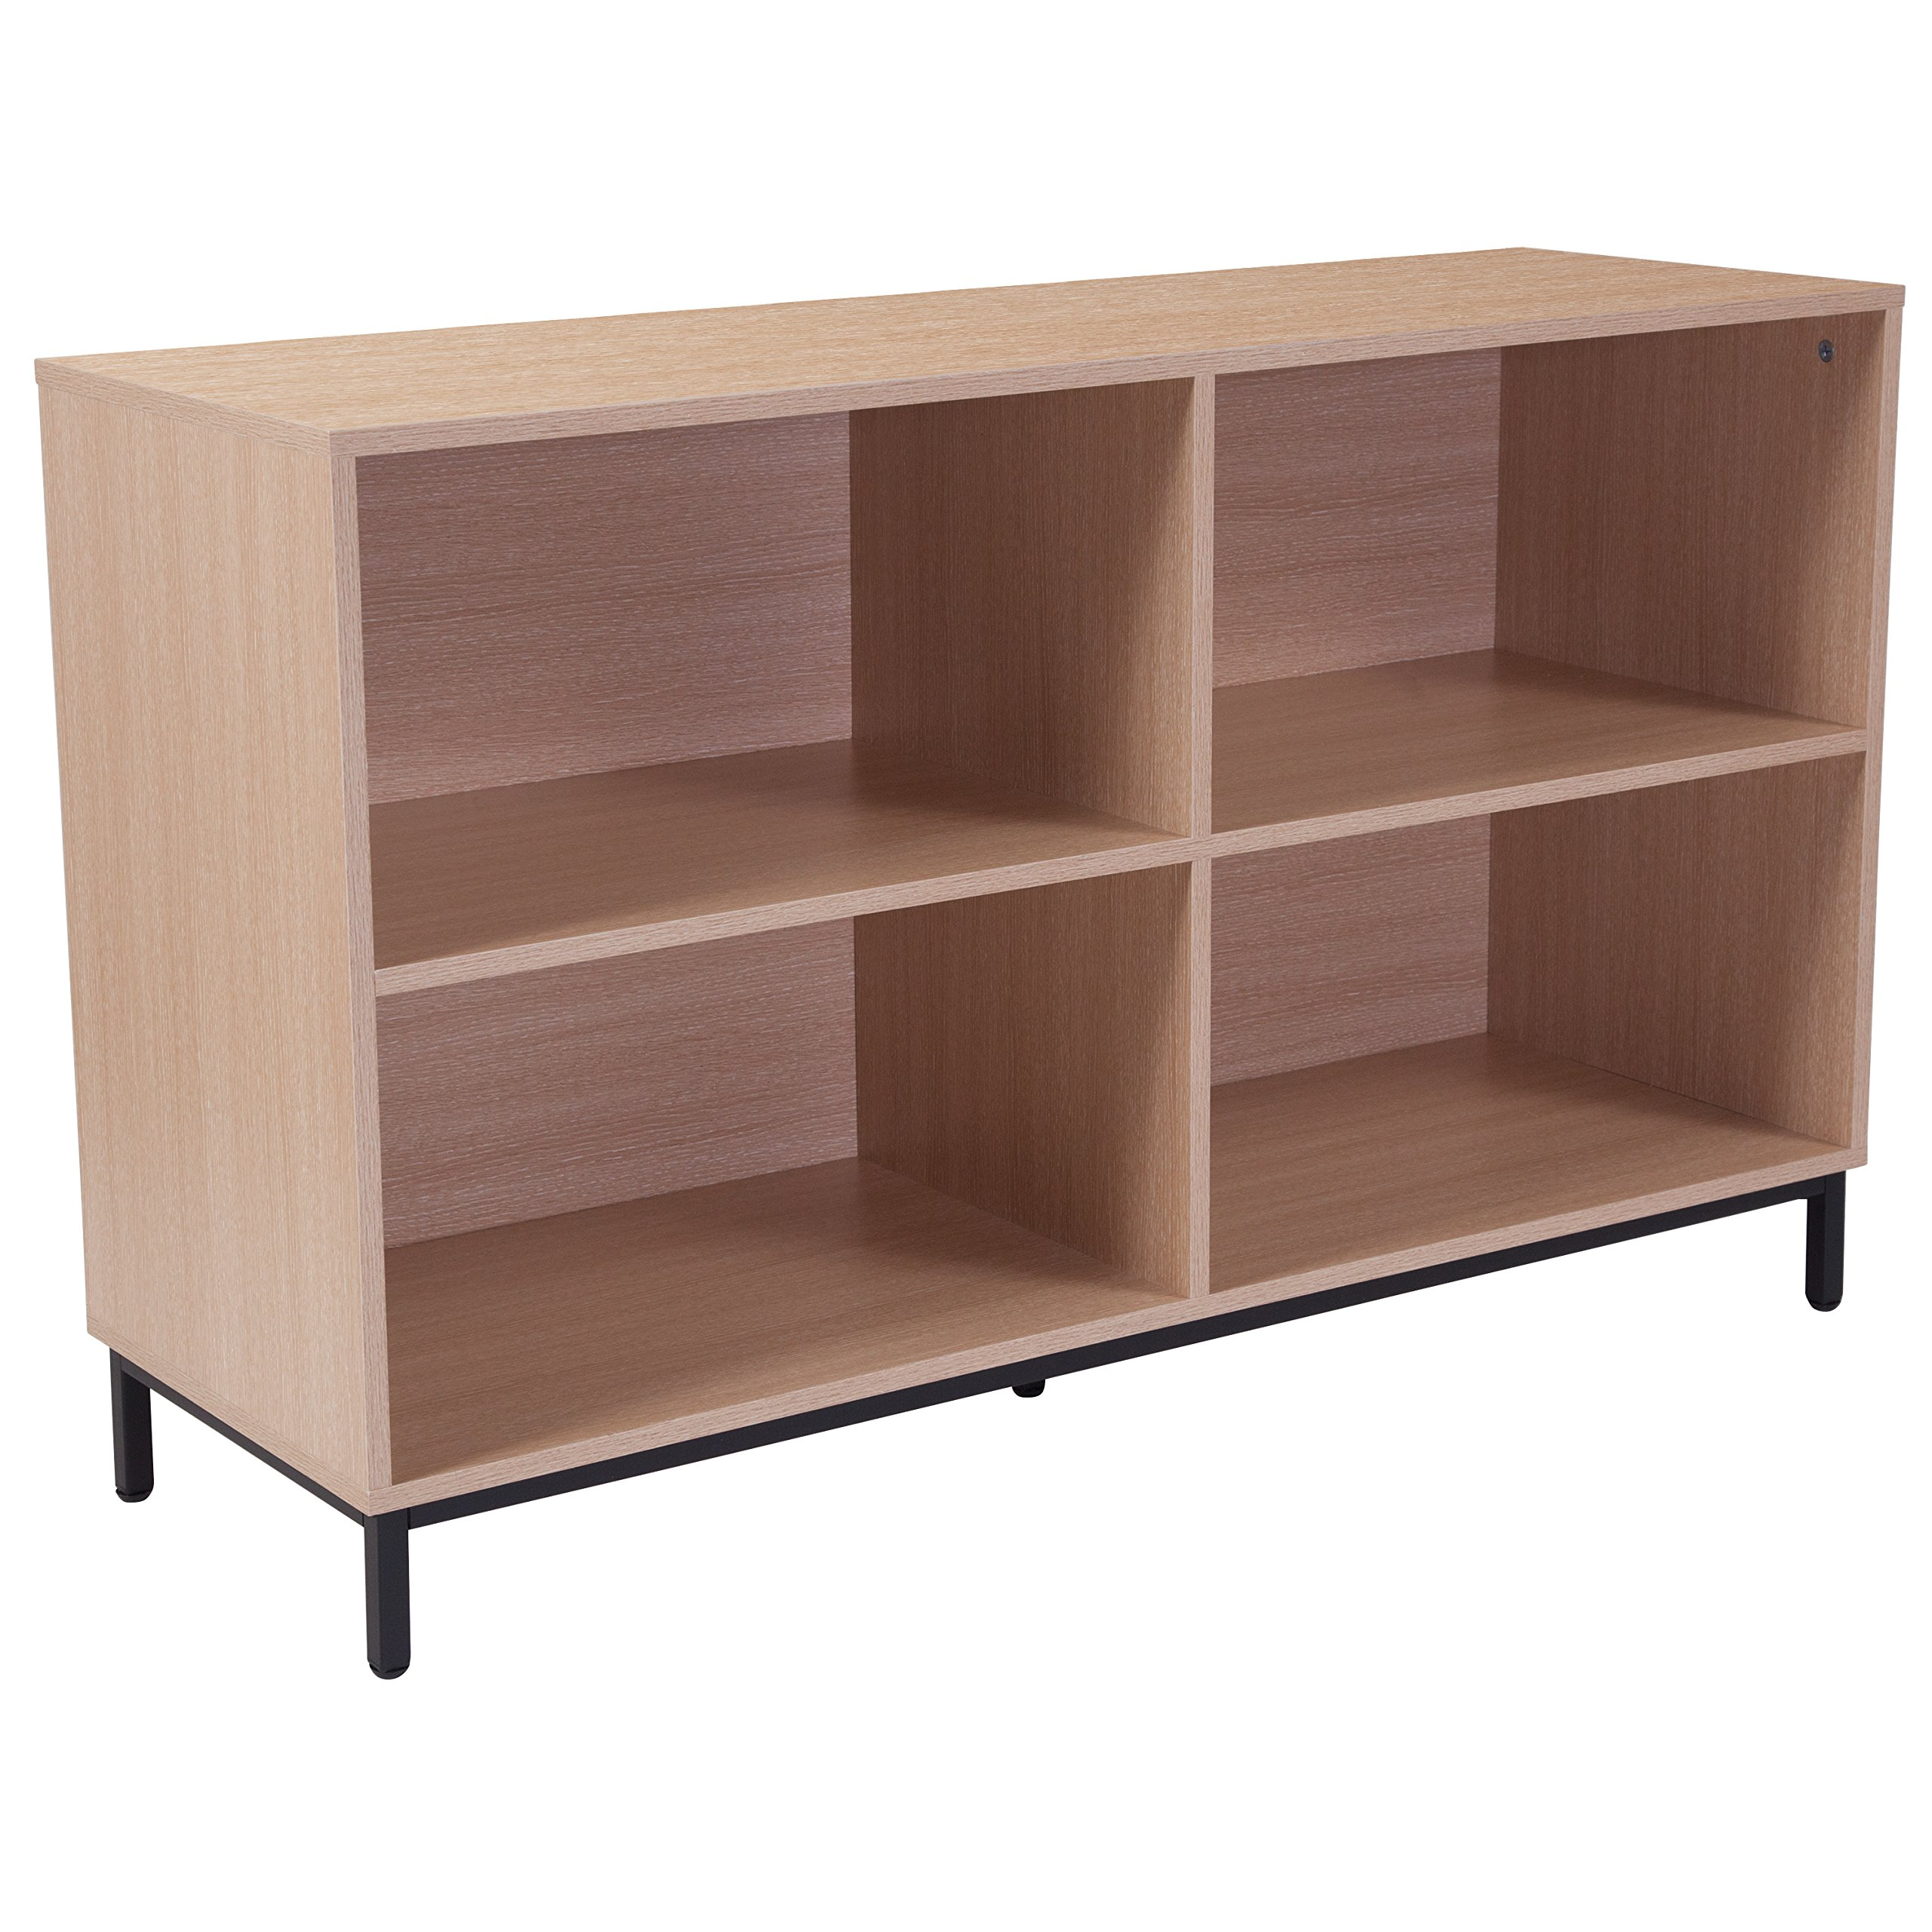 Flash Furniture Dudley Oak Wood Grain Finish Bookshelf